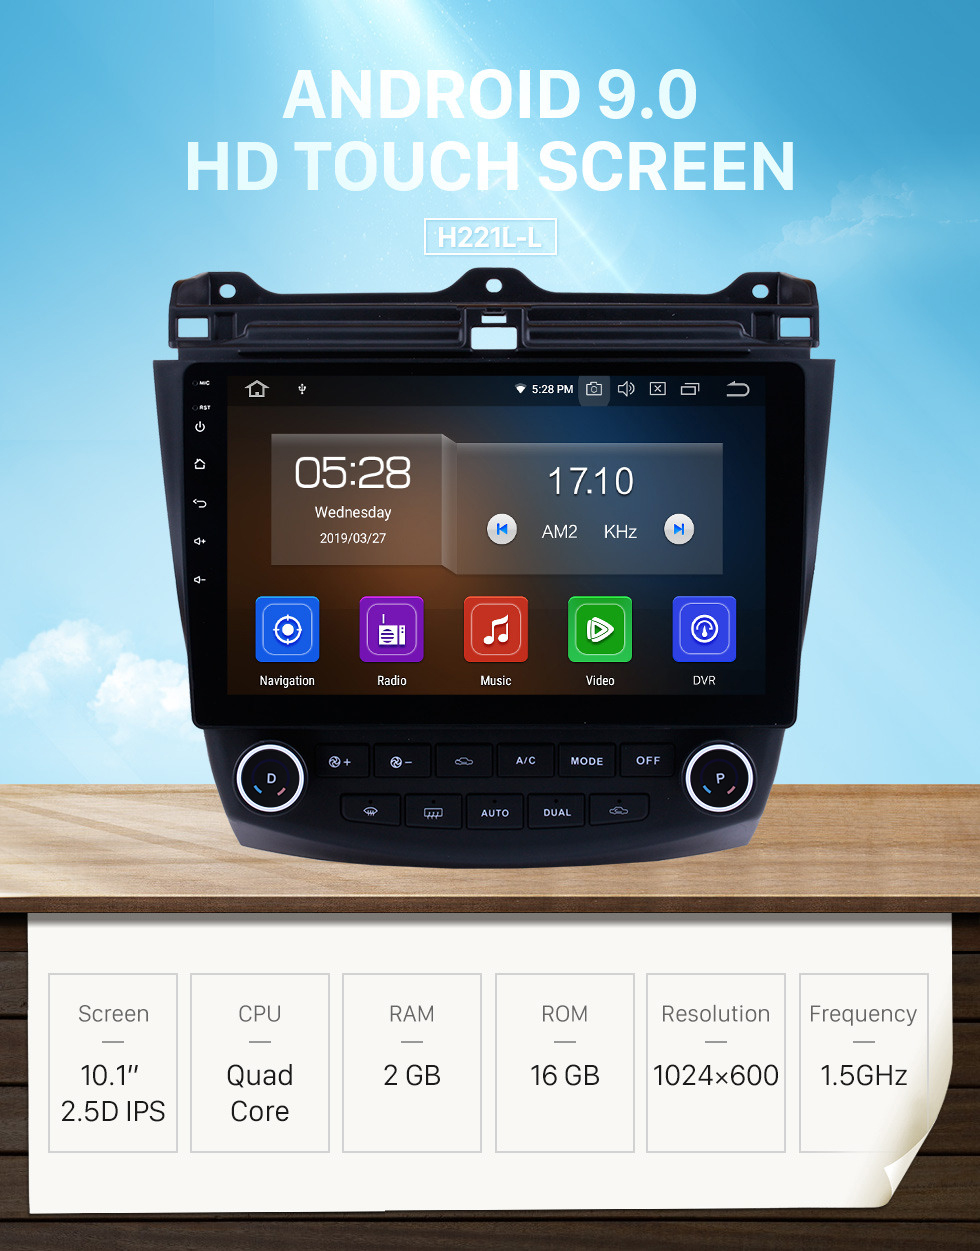 Seicane 10.1 inch HD 1024*600 Touchscreen 2003 2004 2005 2006 2007 Honda Accord 7 Android 9.0 Radio GPS Navigation Bluetooth USB WIFI 1080P Support OBD2 DVR Rearview